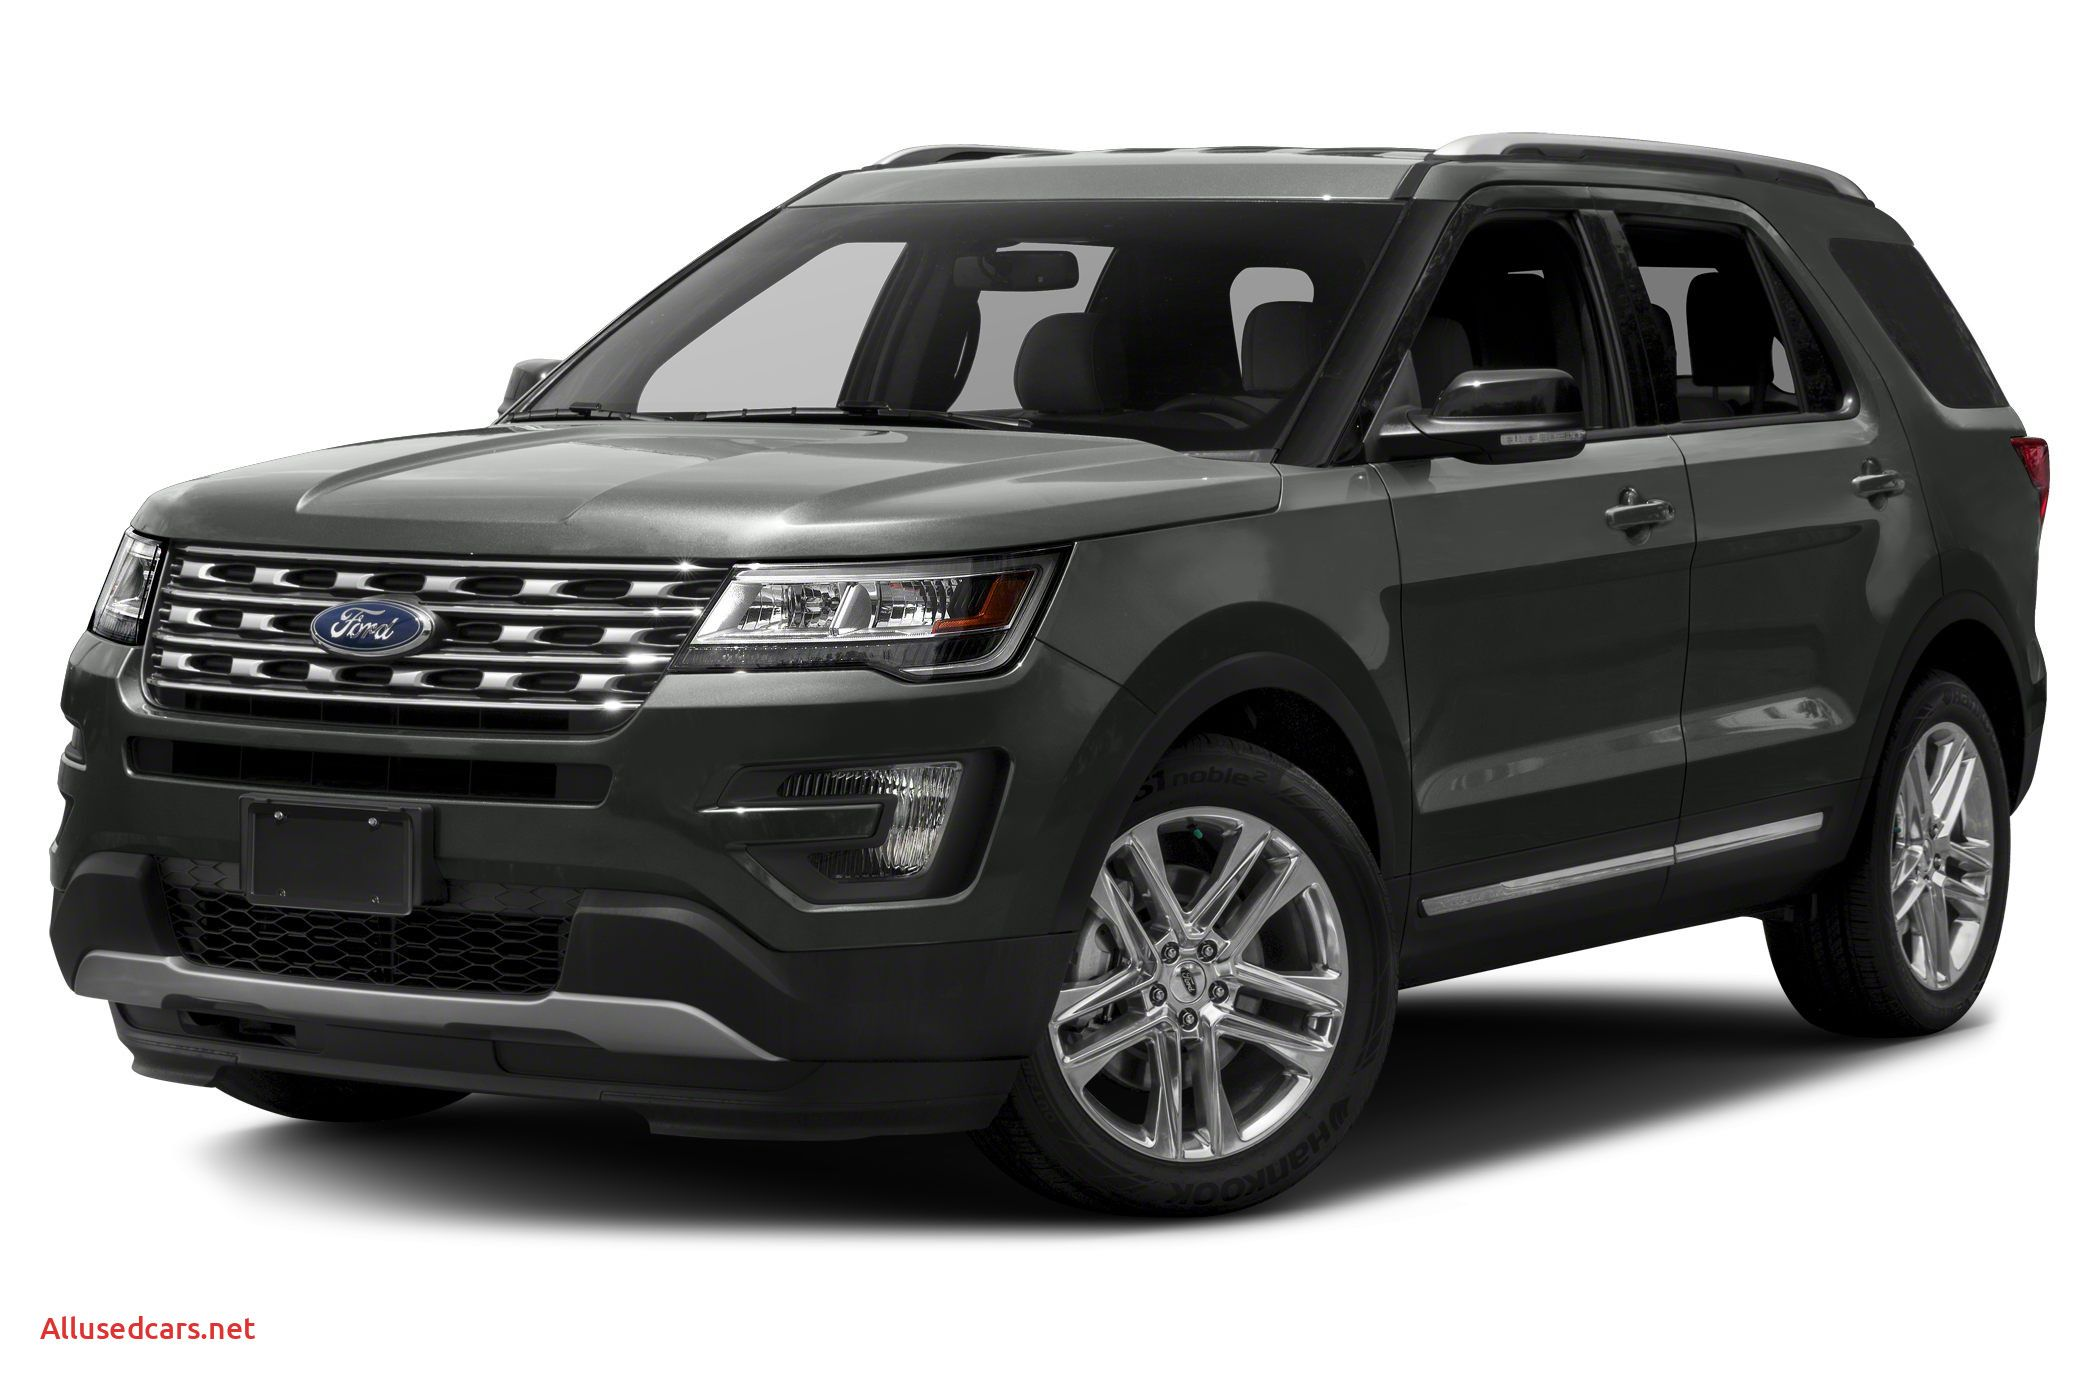 2017 Ford Explorer Xlt 4dr 4x4 Pricing And Options In 2020 Ford Explorer Xlt Ford Explorer Ford Explorer Sport